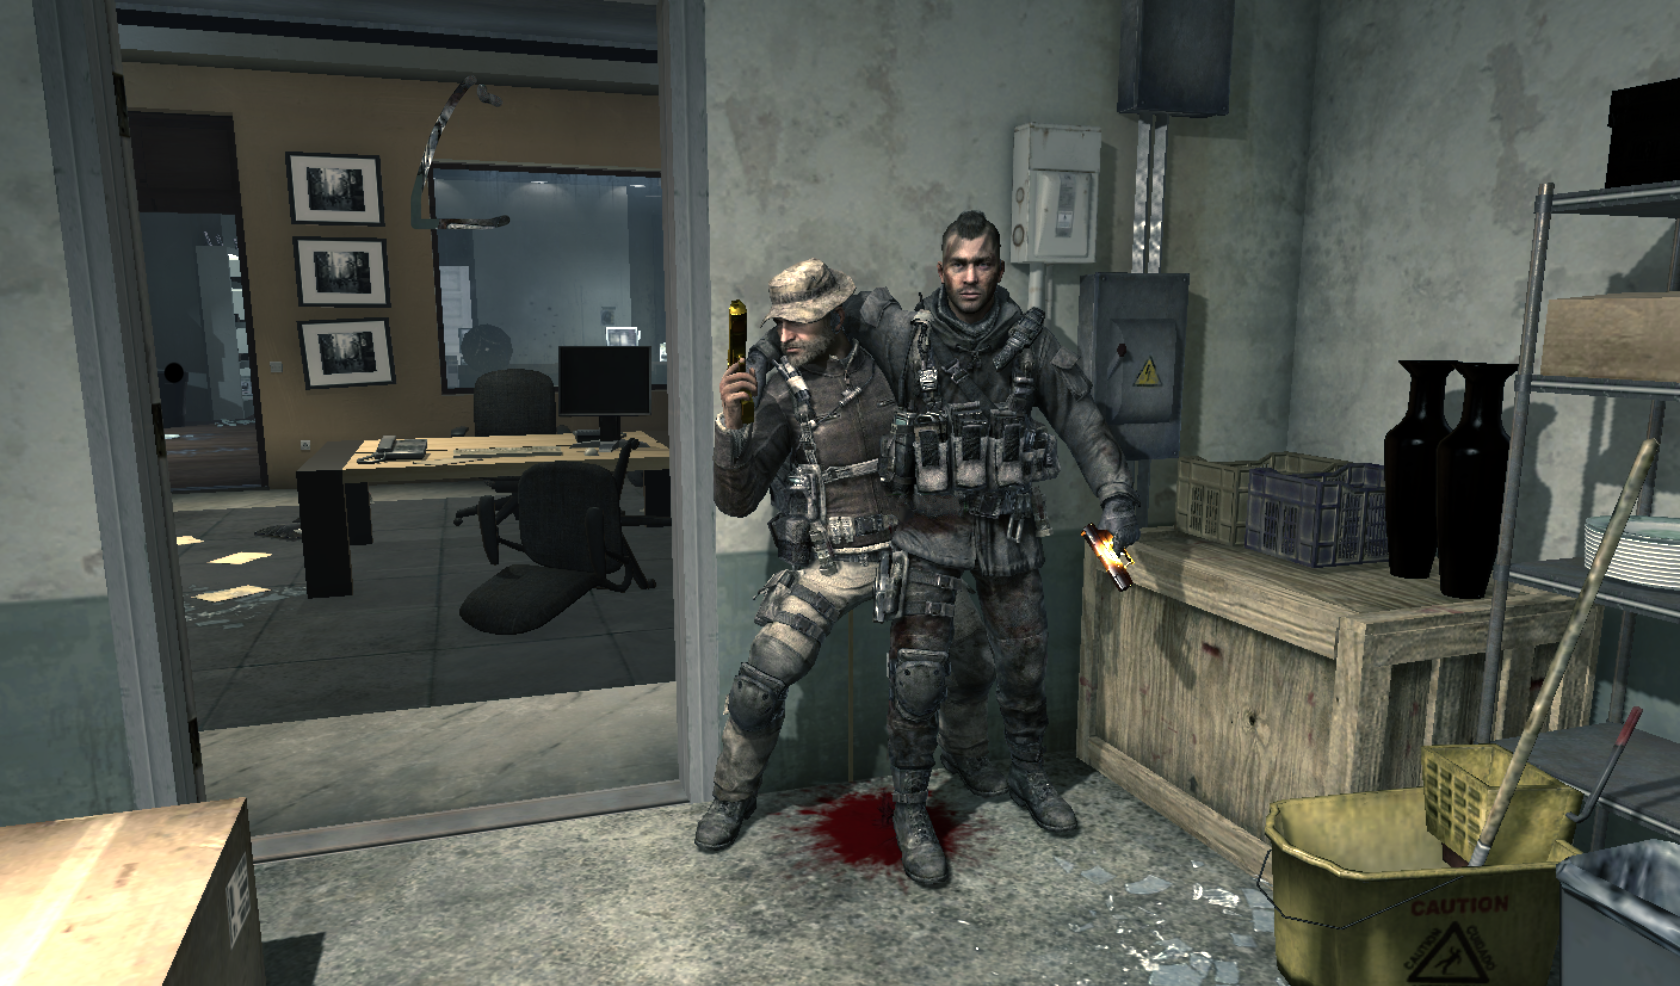 Full resolution      1 680   215  986 pixels  file size  1 74 MB  MIME    Call Of Duty Mw3 Price